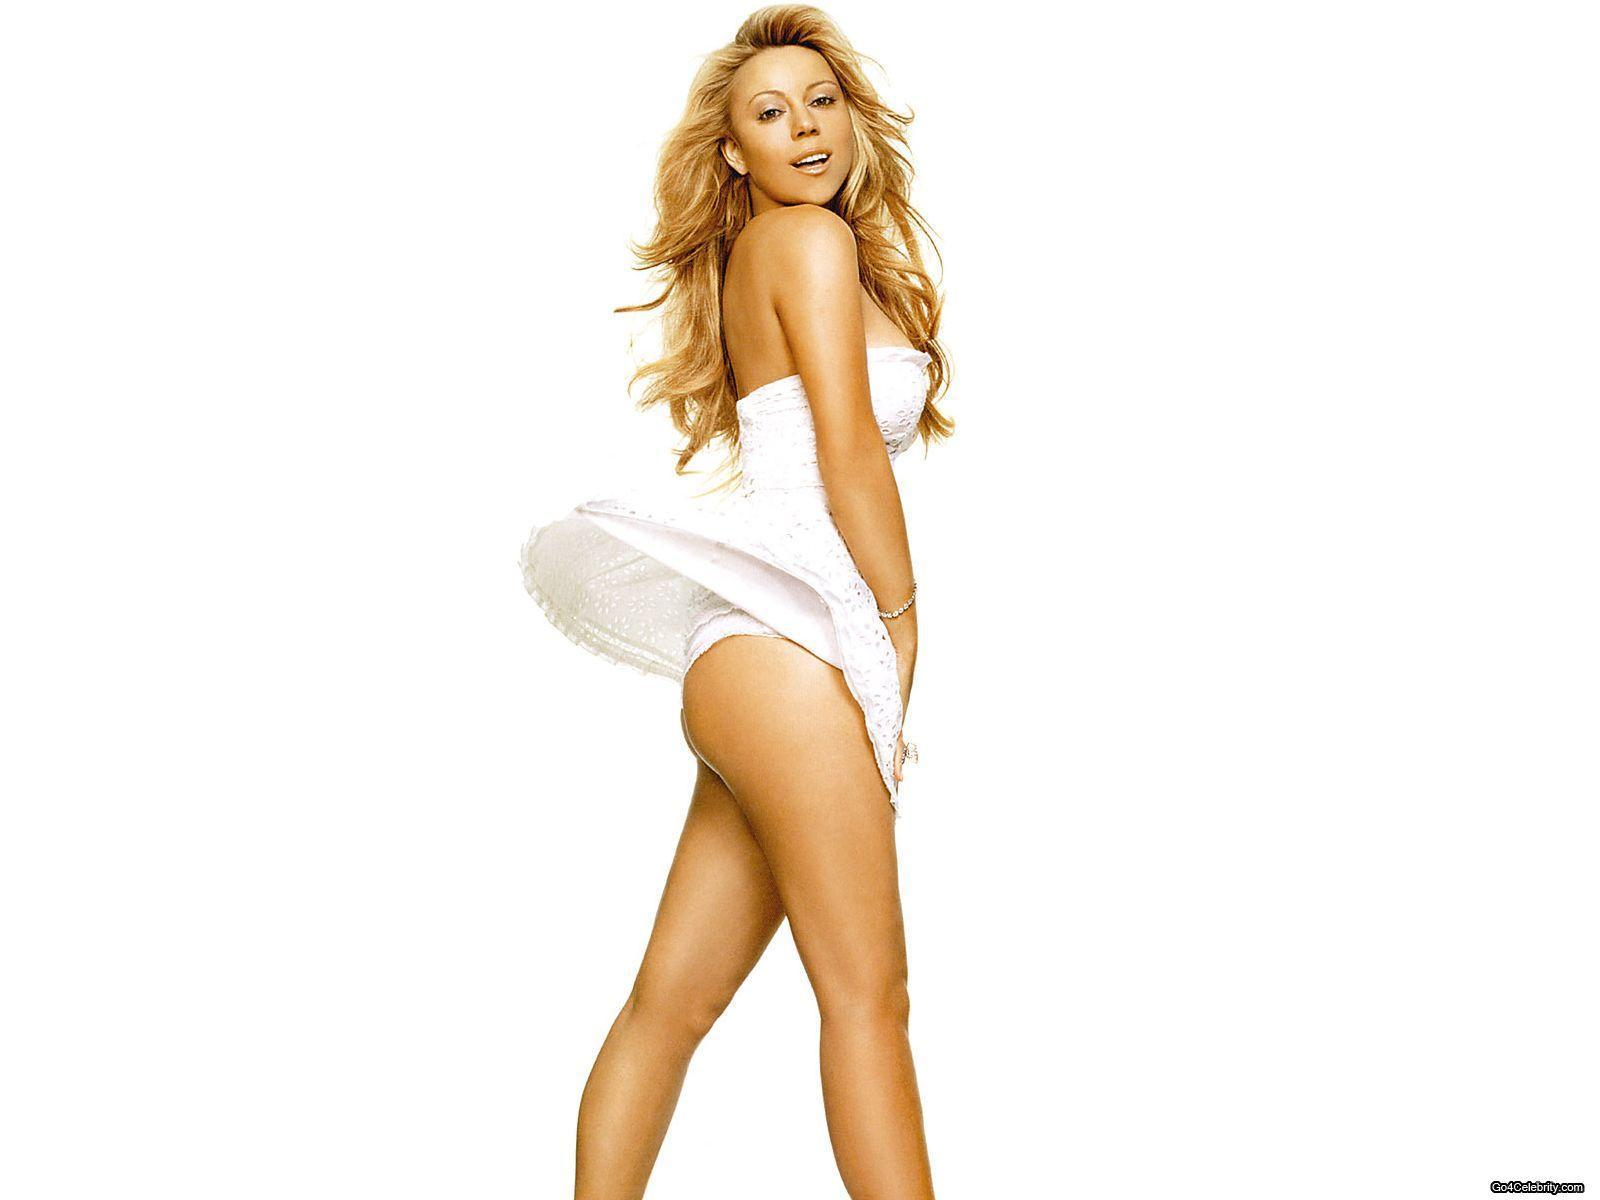 Hot Pictures Of Mariah Carey